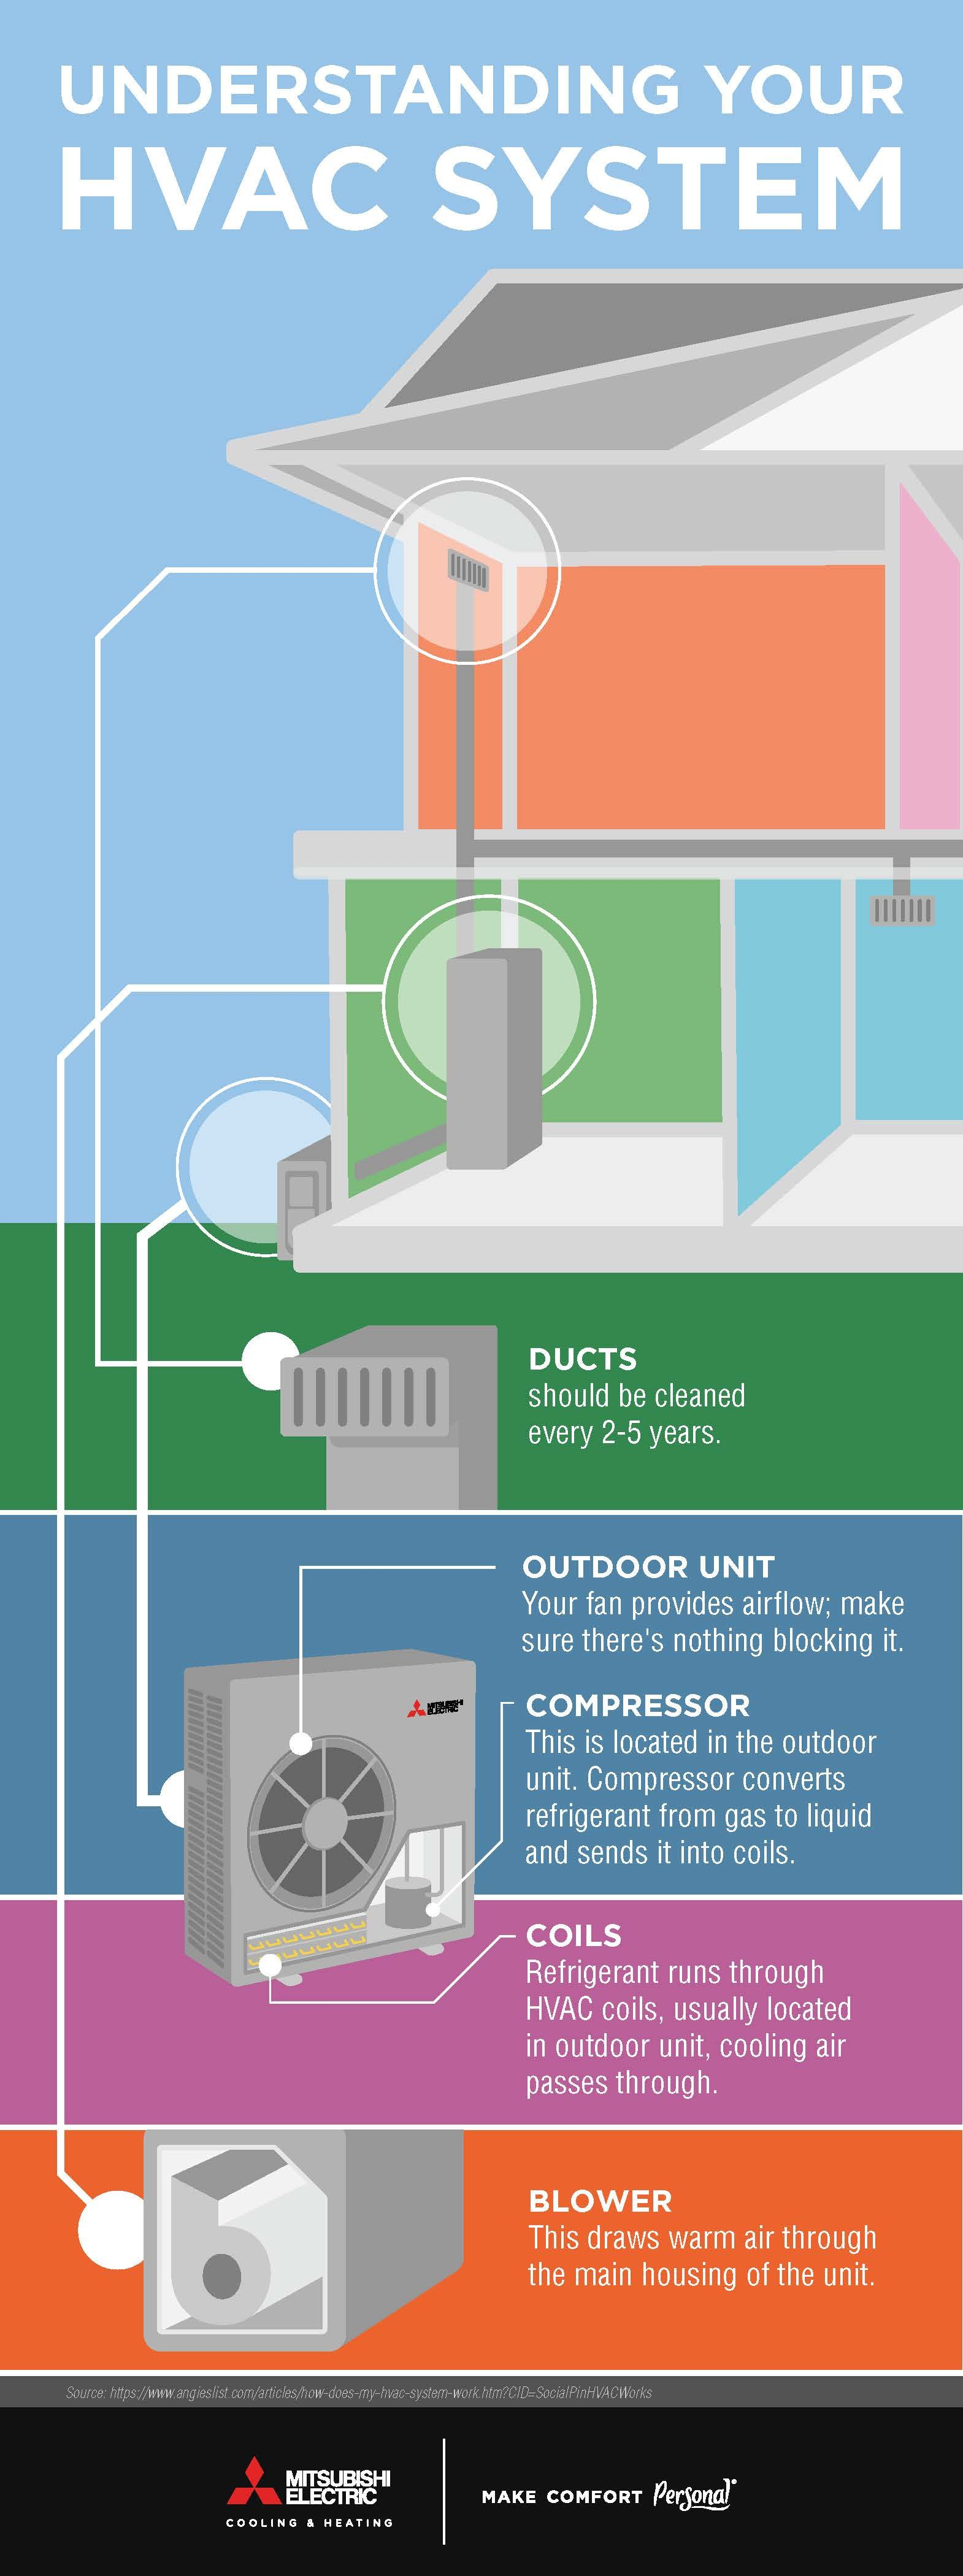 small resolution of understanding your hvac system will help you decide what system works for your home and will better prepare you to talk with a contractor